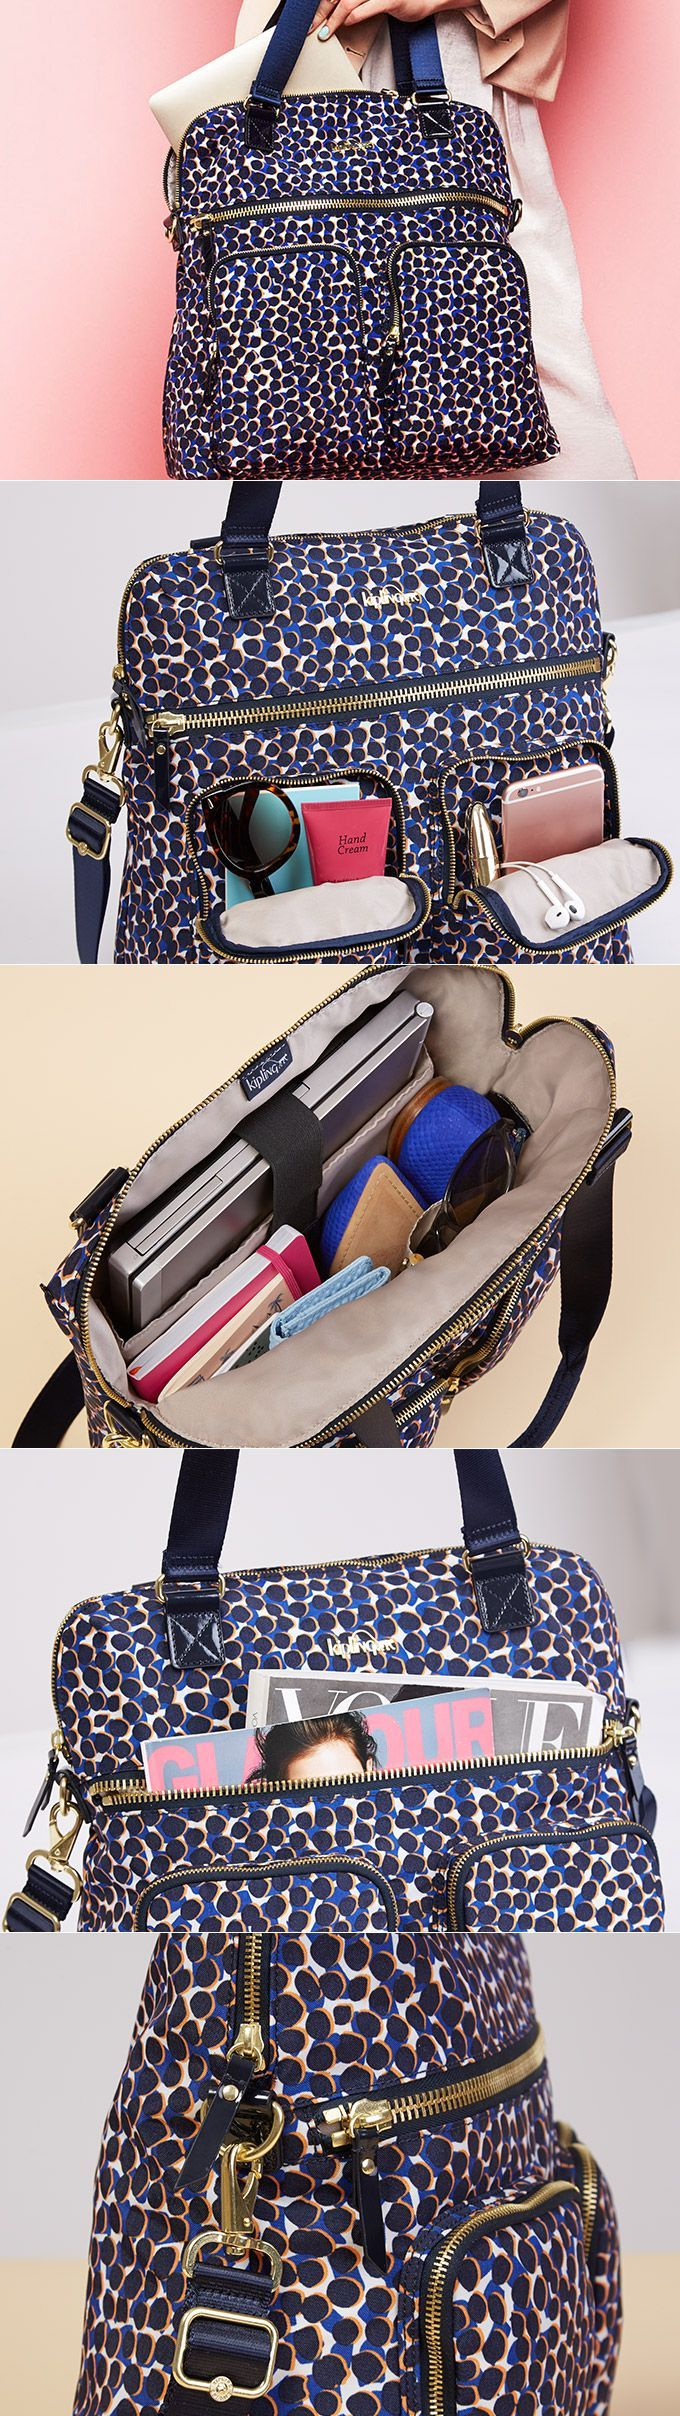 Our most functional handbag ever! Meet the New Camryn